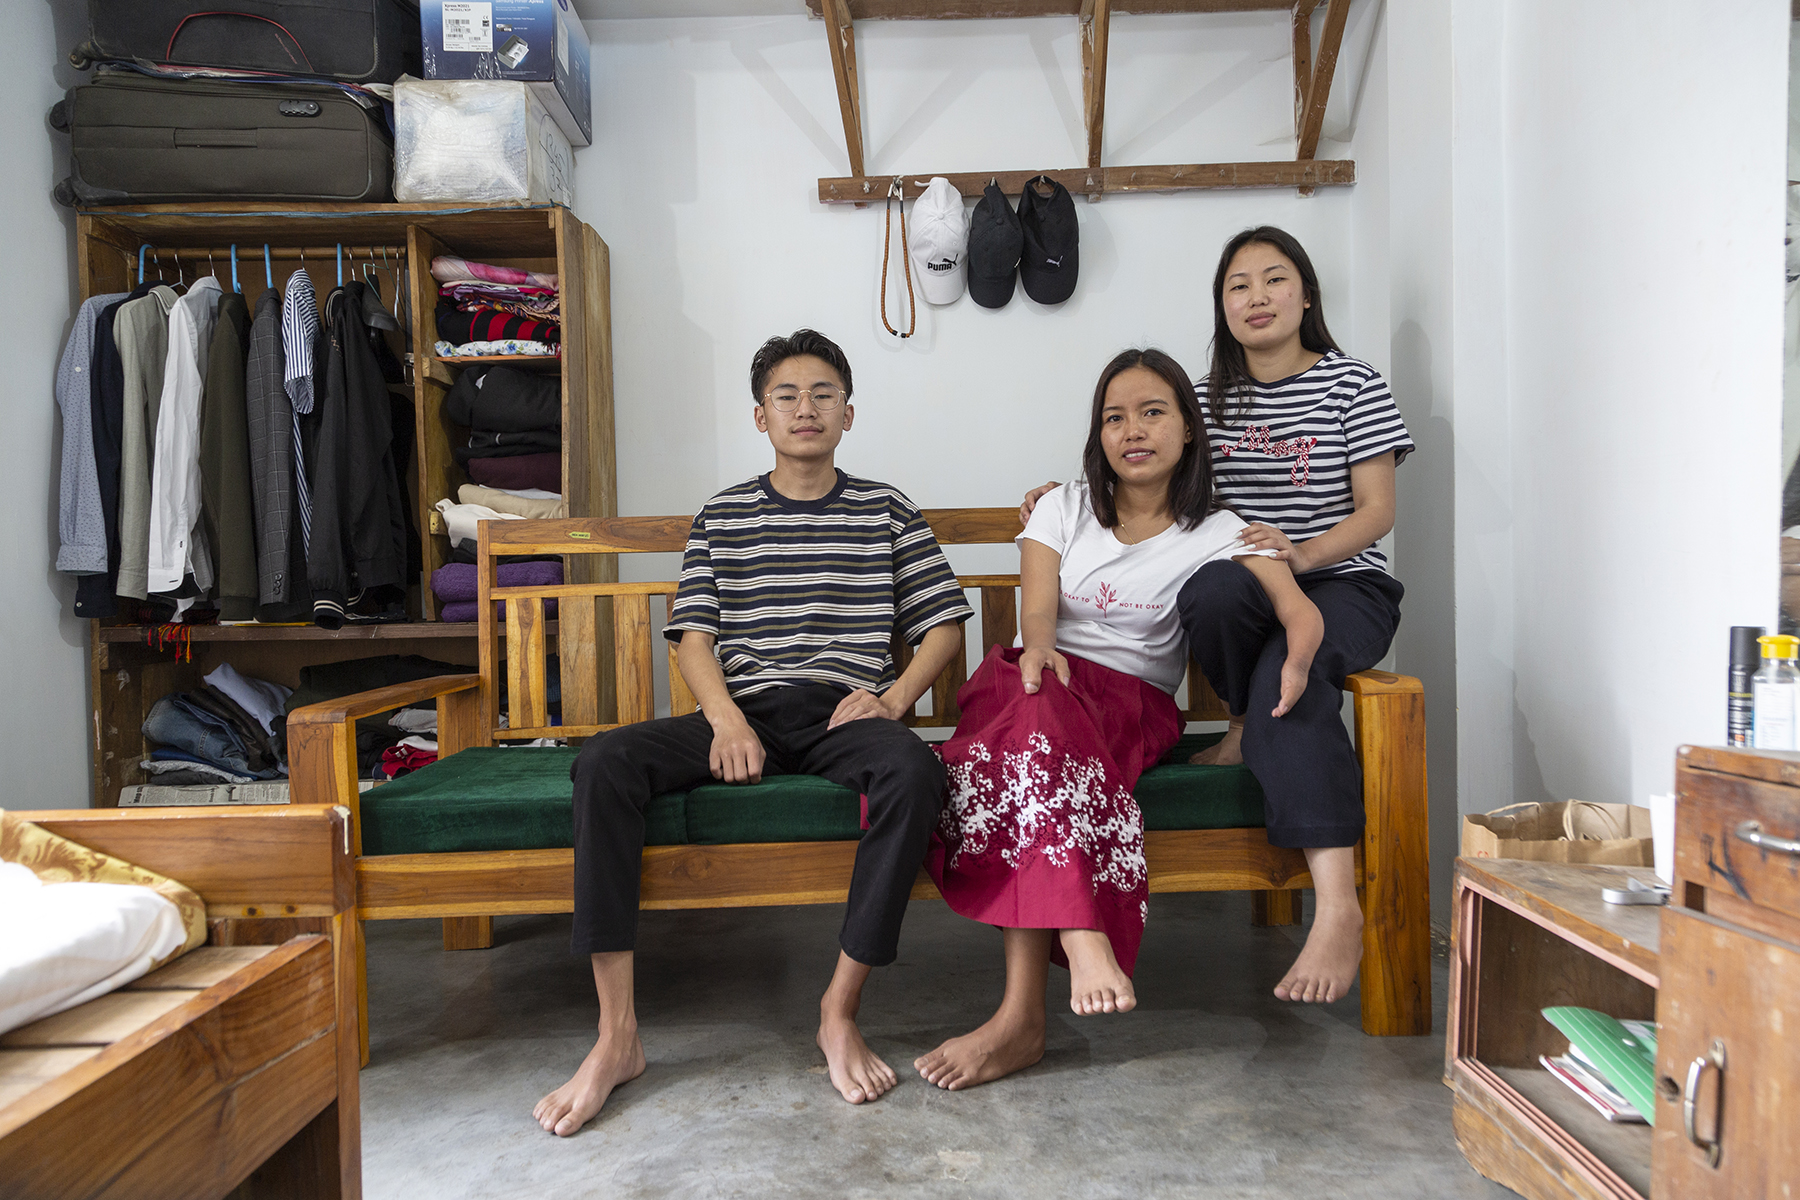 Ashe, her cousin-brother Itsa Muru (19) and cousin-sister Villa Muru (25) are seated on dark green cushions on a wooden settee. Itsa wears a T-shirt of horizontal black and white stripes and black pants and Villa wears the same combination except that the stripes on her T-shirt are narrower. Ashe sits between them in a white T-shirt and crimson skirt. All three are barefoot.